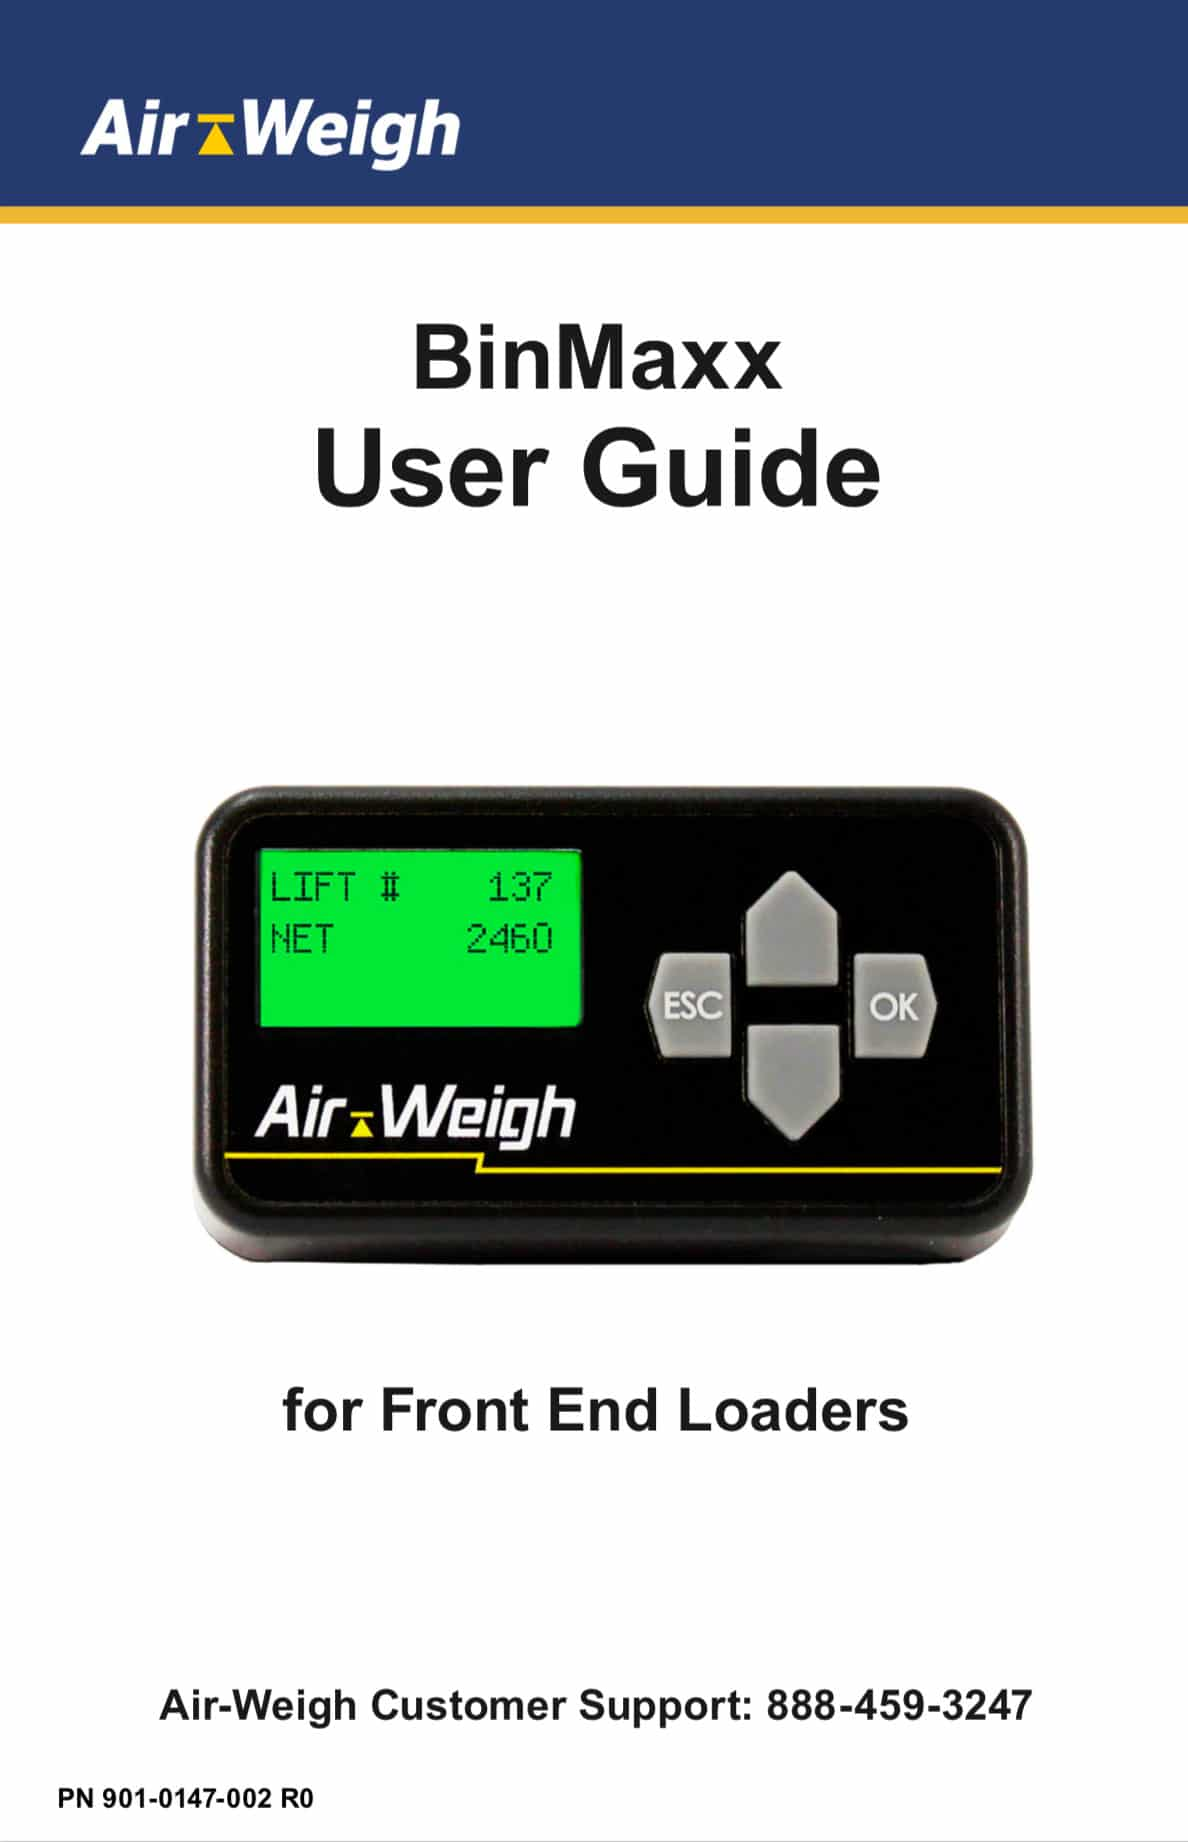 BinMaxx User Guide for Front End Loaders